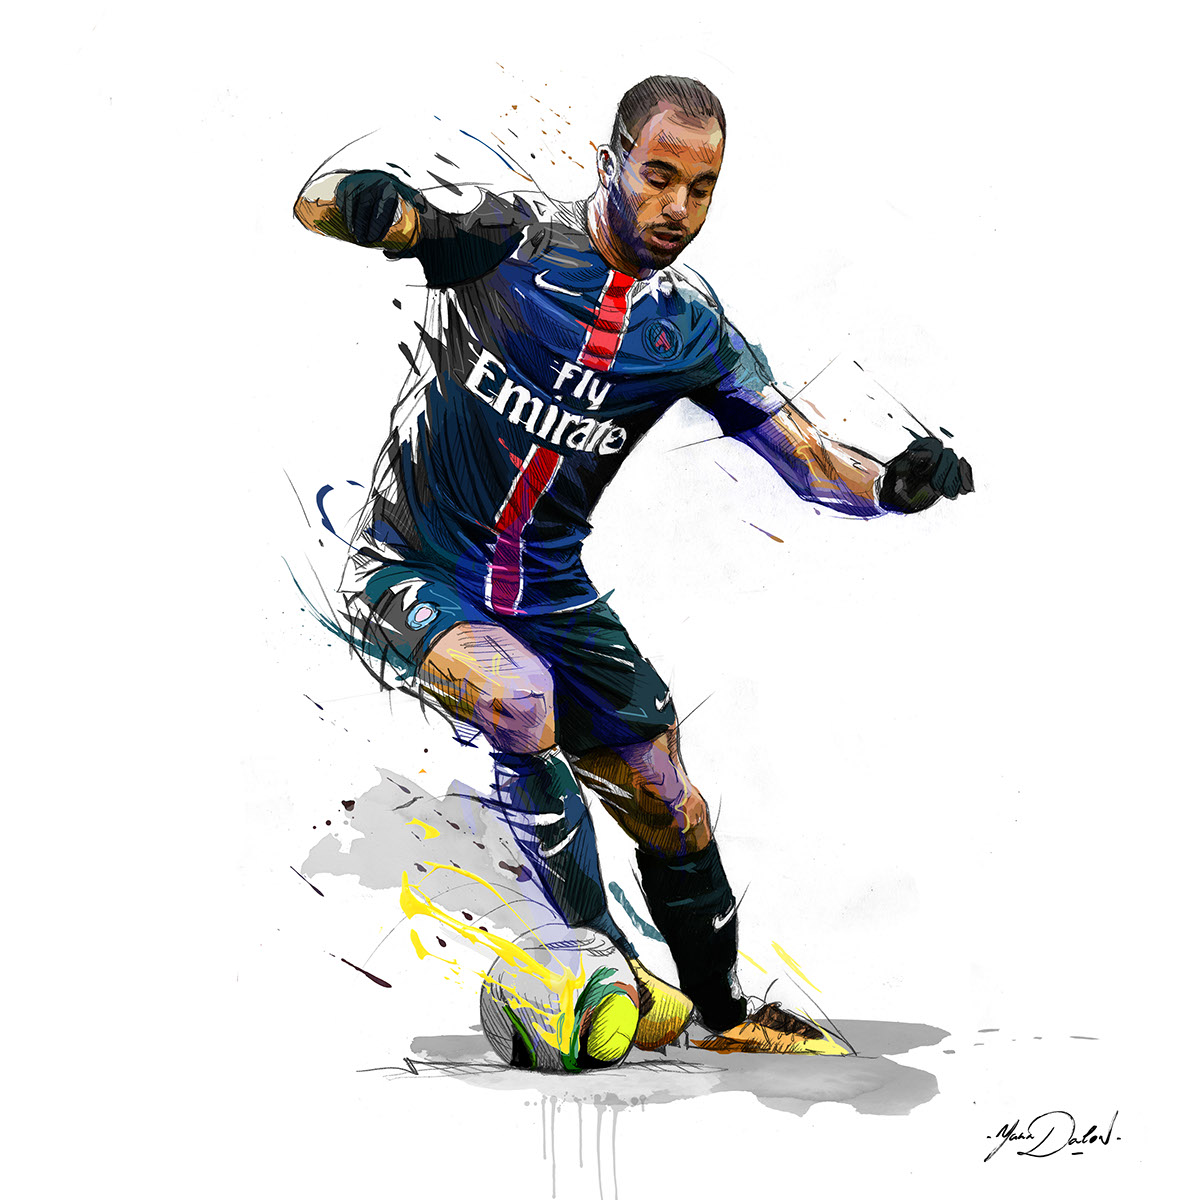 Lucas Moura Political Views: Lucas Moura On Behance